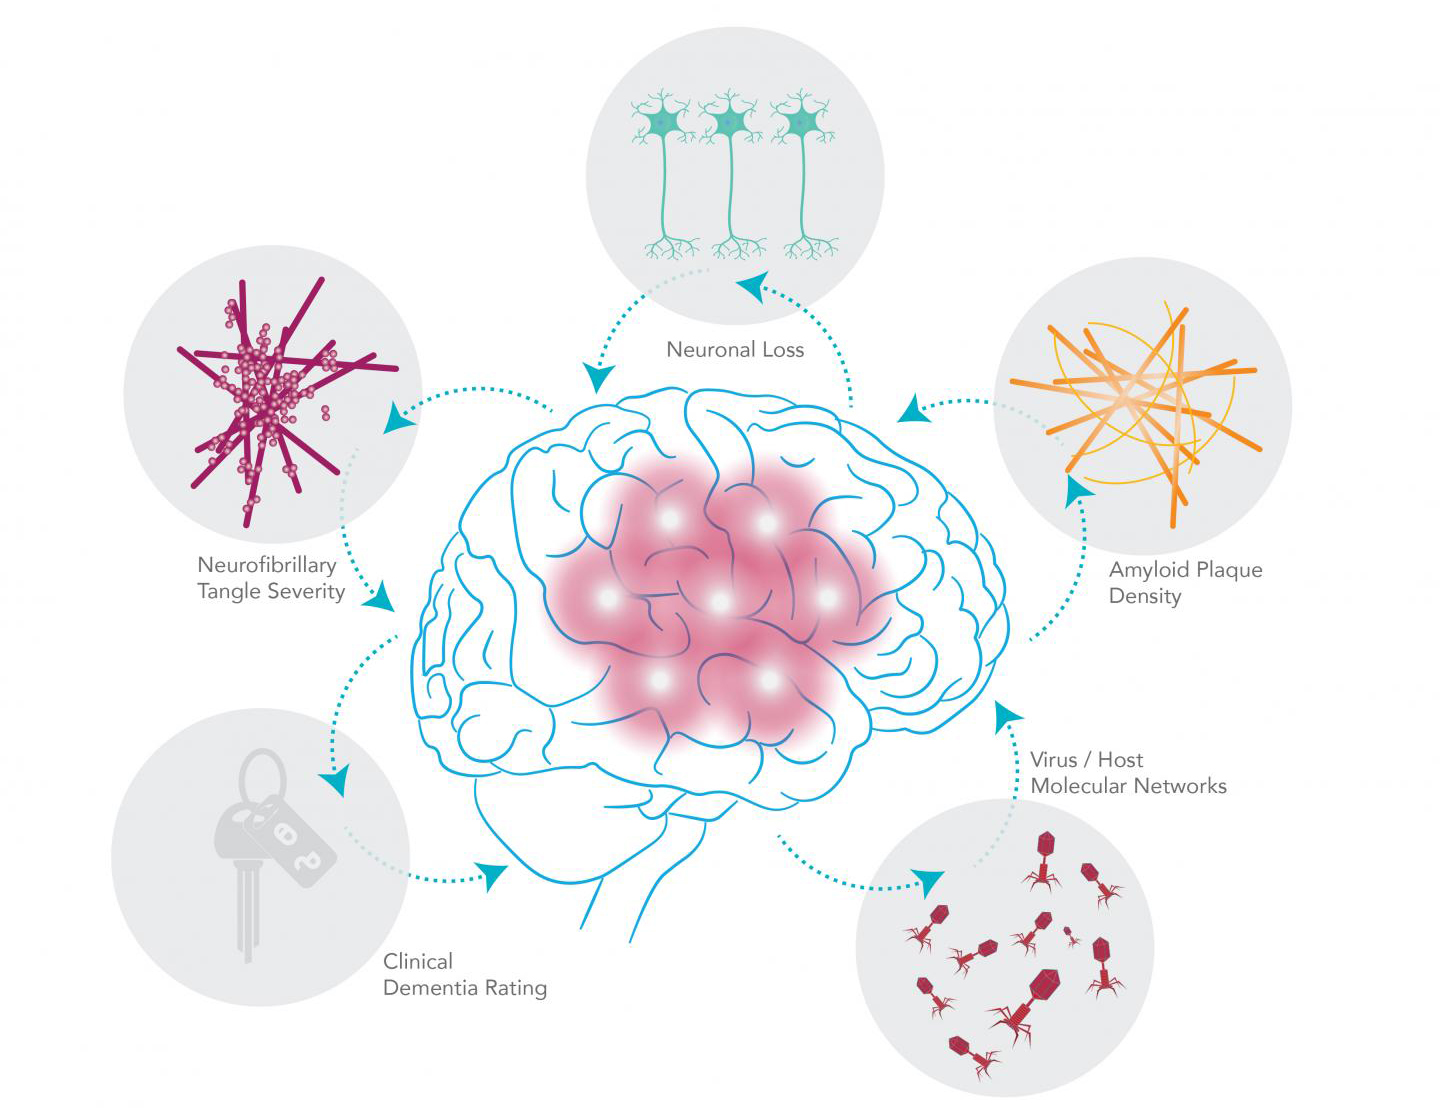 Viral–host networks, including genes and RNA transcripts, interact in complex ways. A pair of herpesviruses—HHV 6A and 7—were found in greater abundance in brain samples from AD patients compared with normal brains. These viruses seem to also be implicated in the AD-related genetic networks responsible for classic Alzheimer's pathology, including cell death, the deposition of amyloid plaque, and production of neurofibrillary tangles. [Shireen Dooling for the Biodesign Institute at ASU]